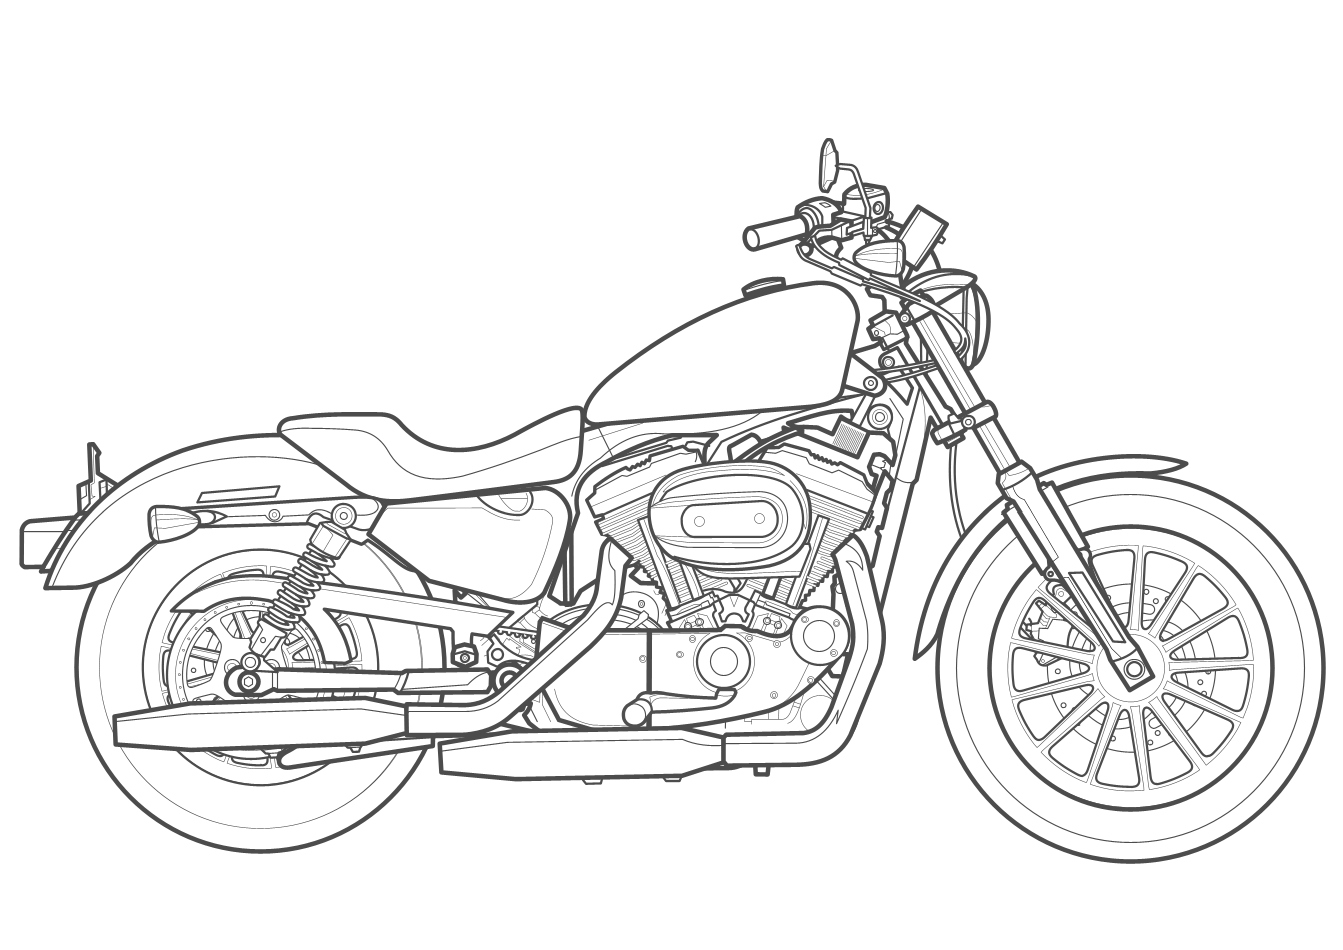 how to draw a motorcycle how to draw a motorbike step by step motorcycles how draw motorcycle a to